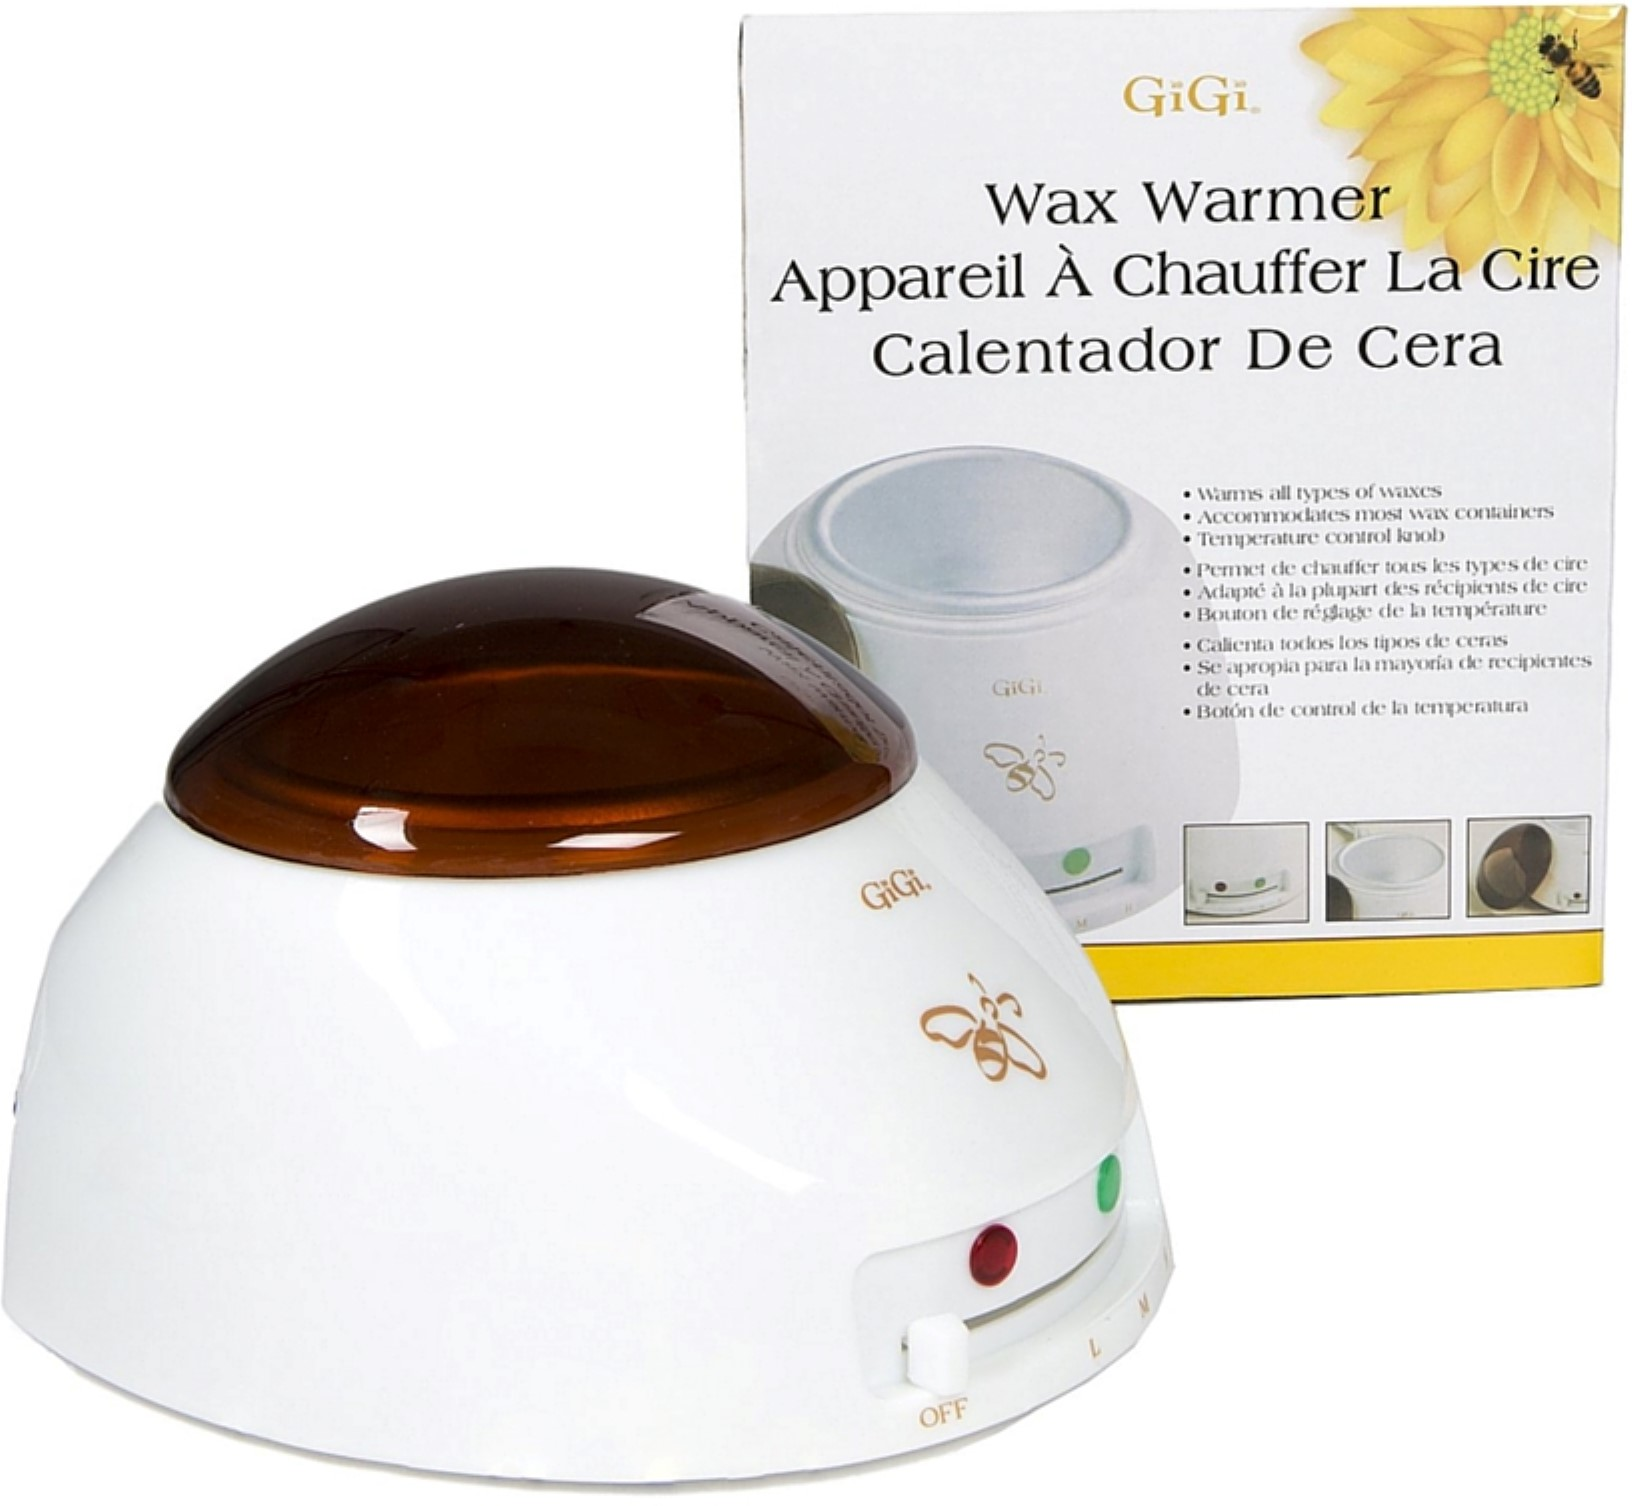 GiGi Professional Multi-Purpose Wax Warmer w/ See-Through Cover